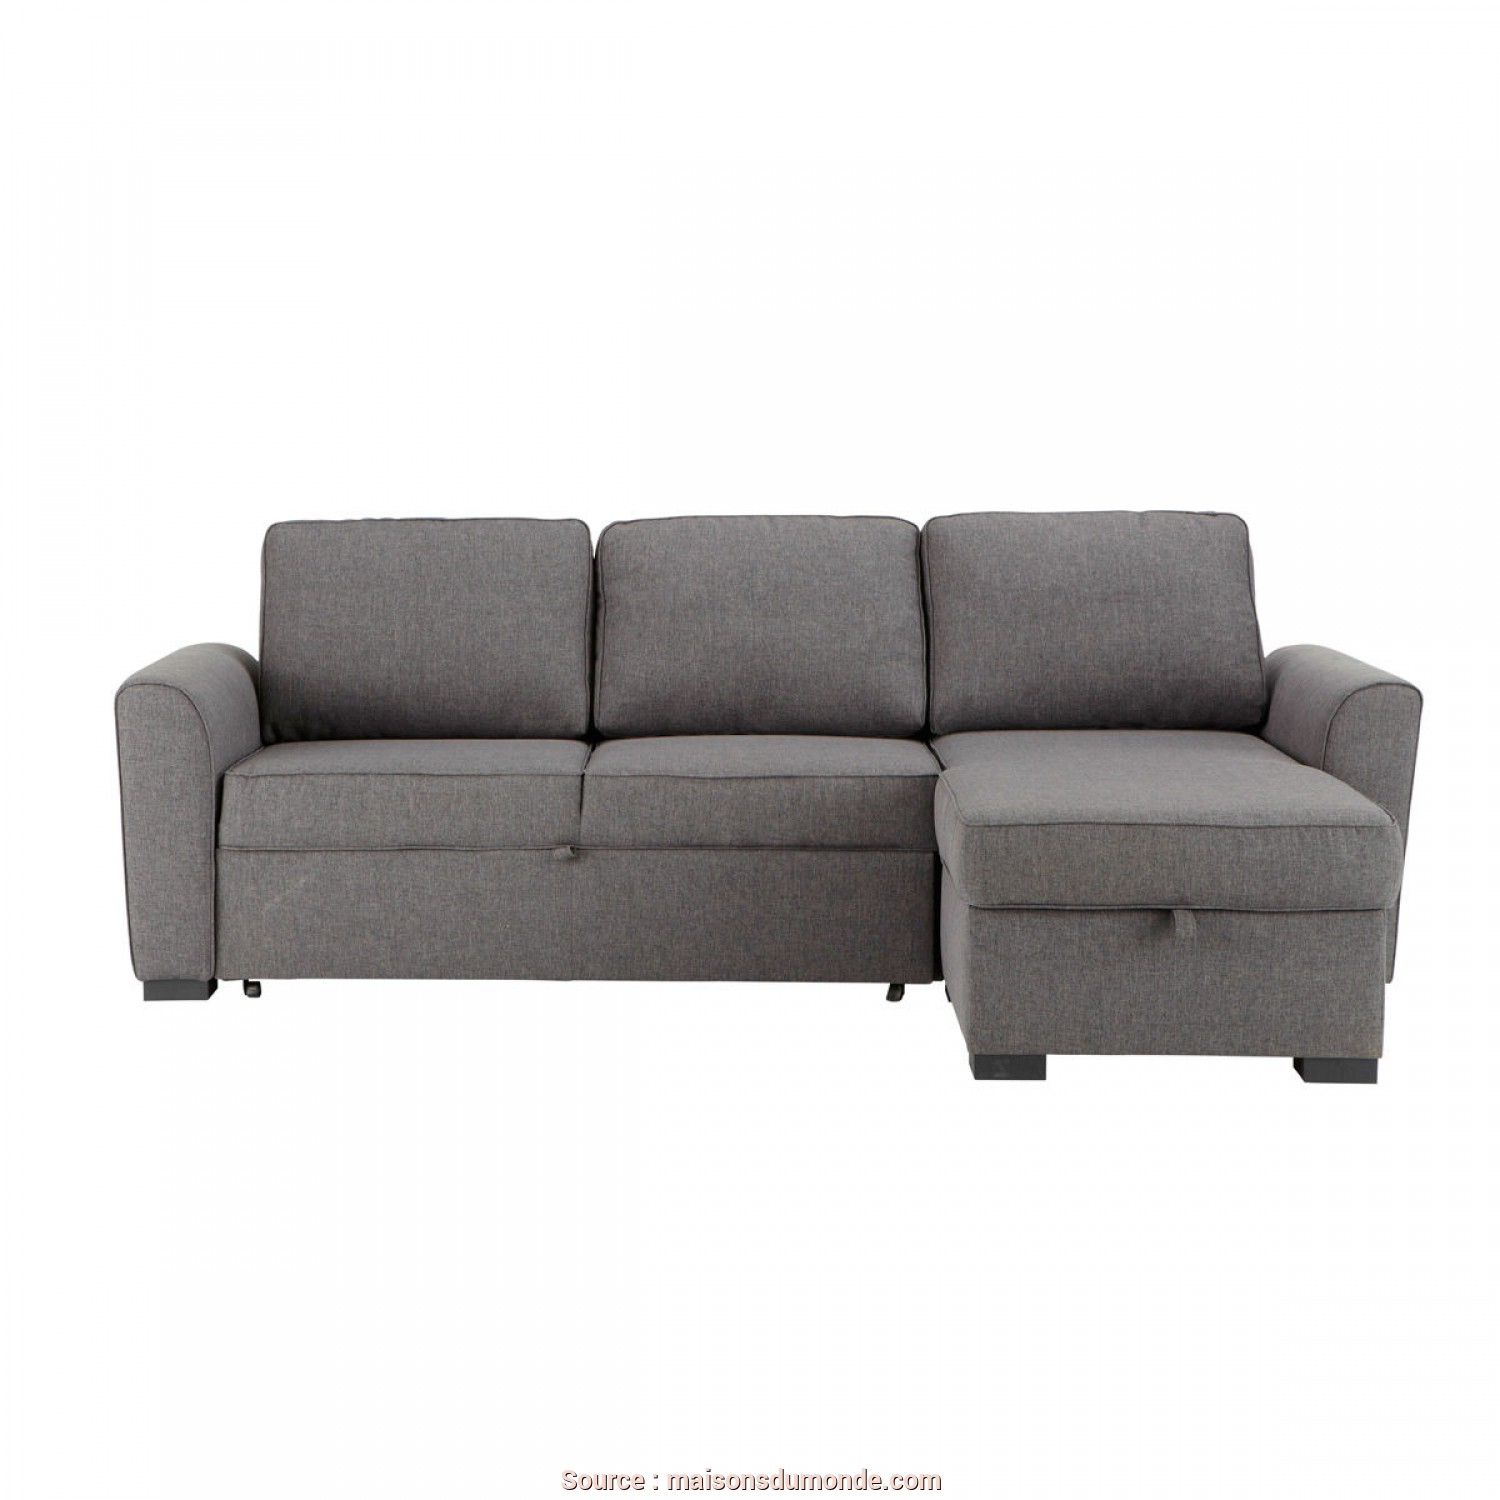 Divani Outdoor Maison Du Monde, Migliore 3/4 Seater Grey Fabric Corner Sofa Bed, Maisons Du Monde